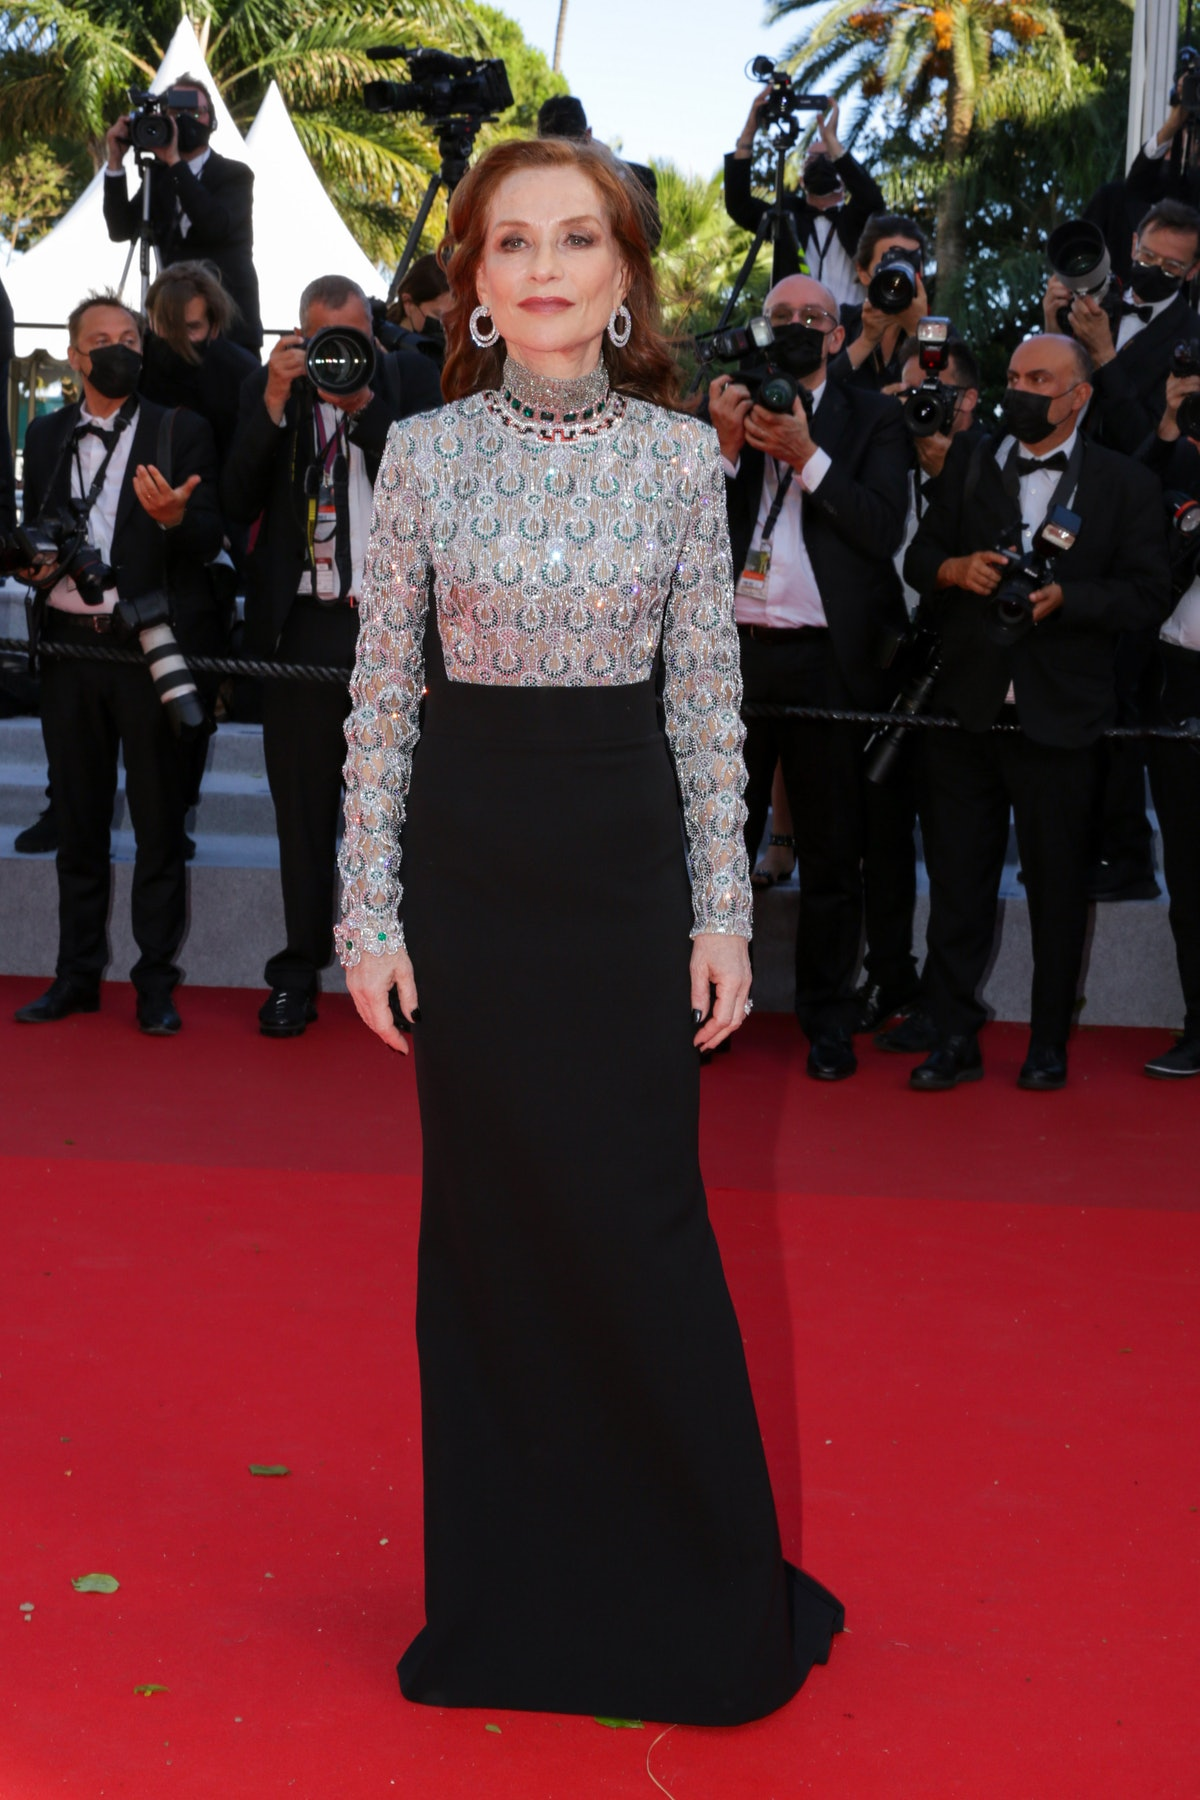 """CANNES, FRANCE - JULY 13: Isabelle Huppert  attends the """"Aline, The Voice Of Love"""" screening during the 74th annual Cannes Film Festival on July 13, 2021 in Cannes, France. (Photo by Stephane Cardinale - Corbis/Corbis via Getty Images)"""